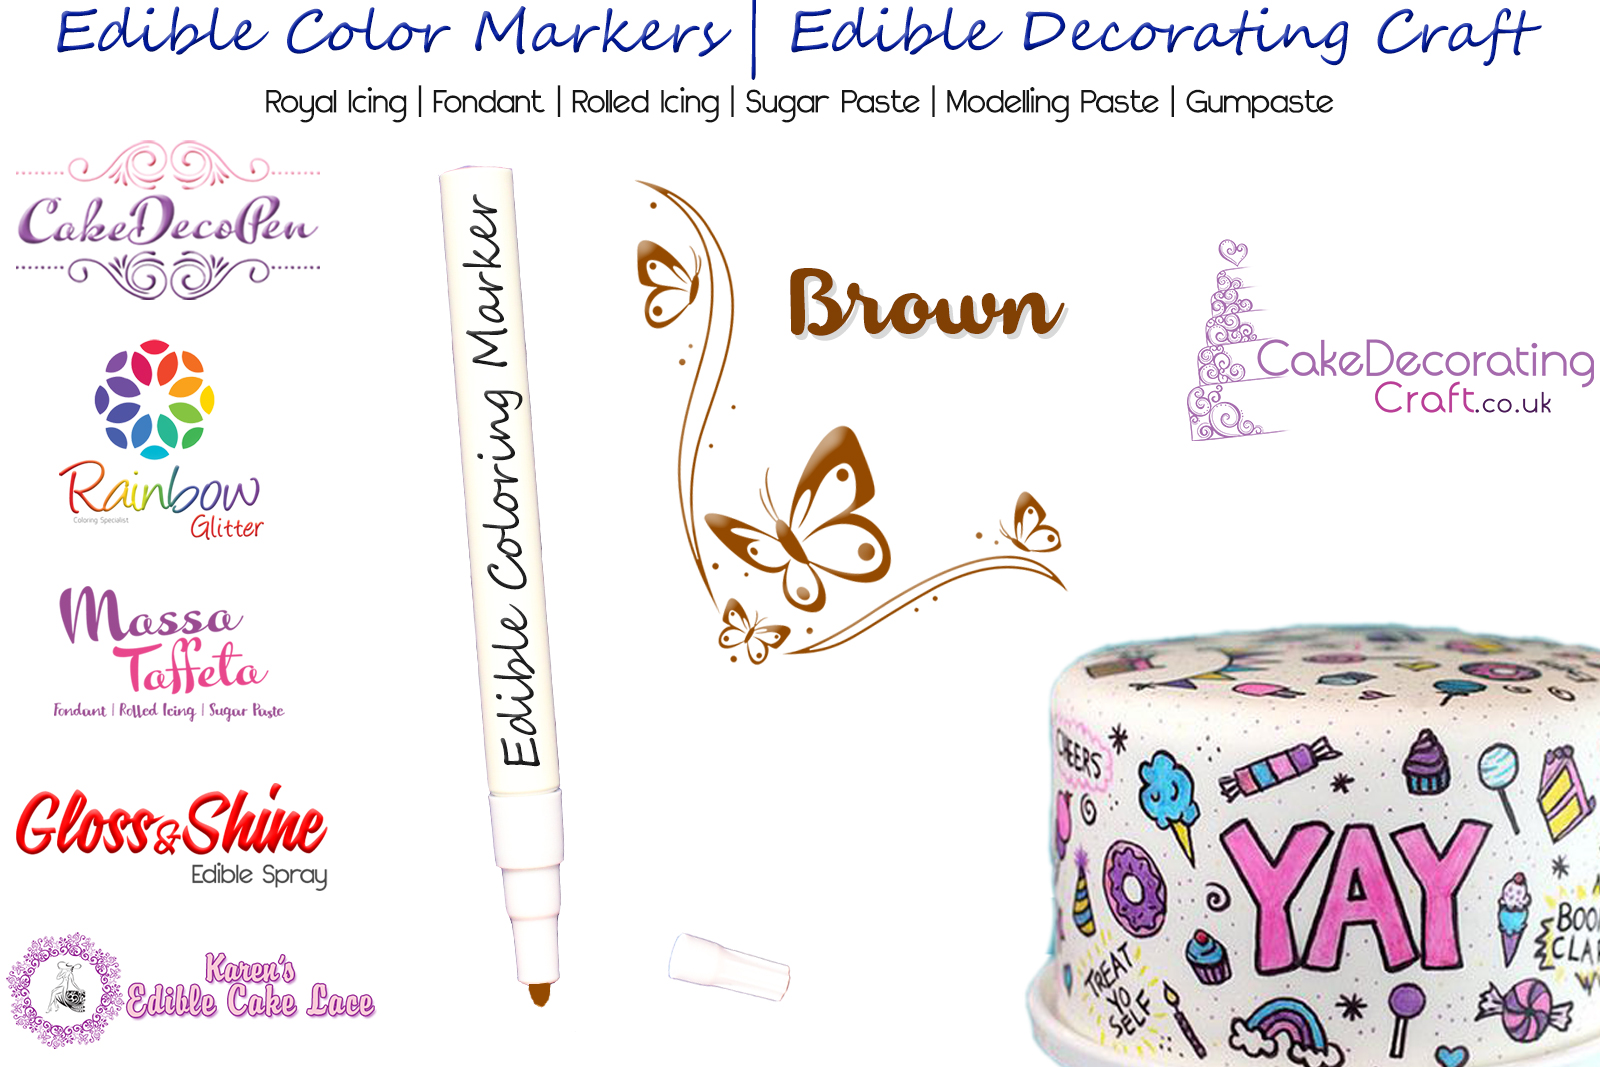 Cake Decorating Craft | Icing Pen | Icing Colouring Marker | Edible Painting Ink | Brown | Christmas Cake Cupcake Decorating Craft